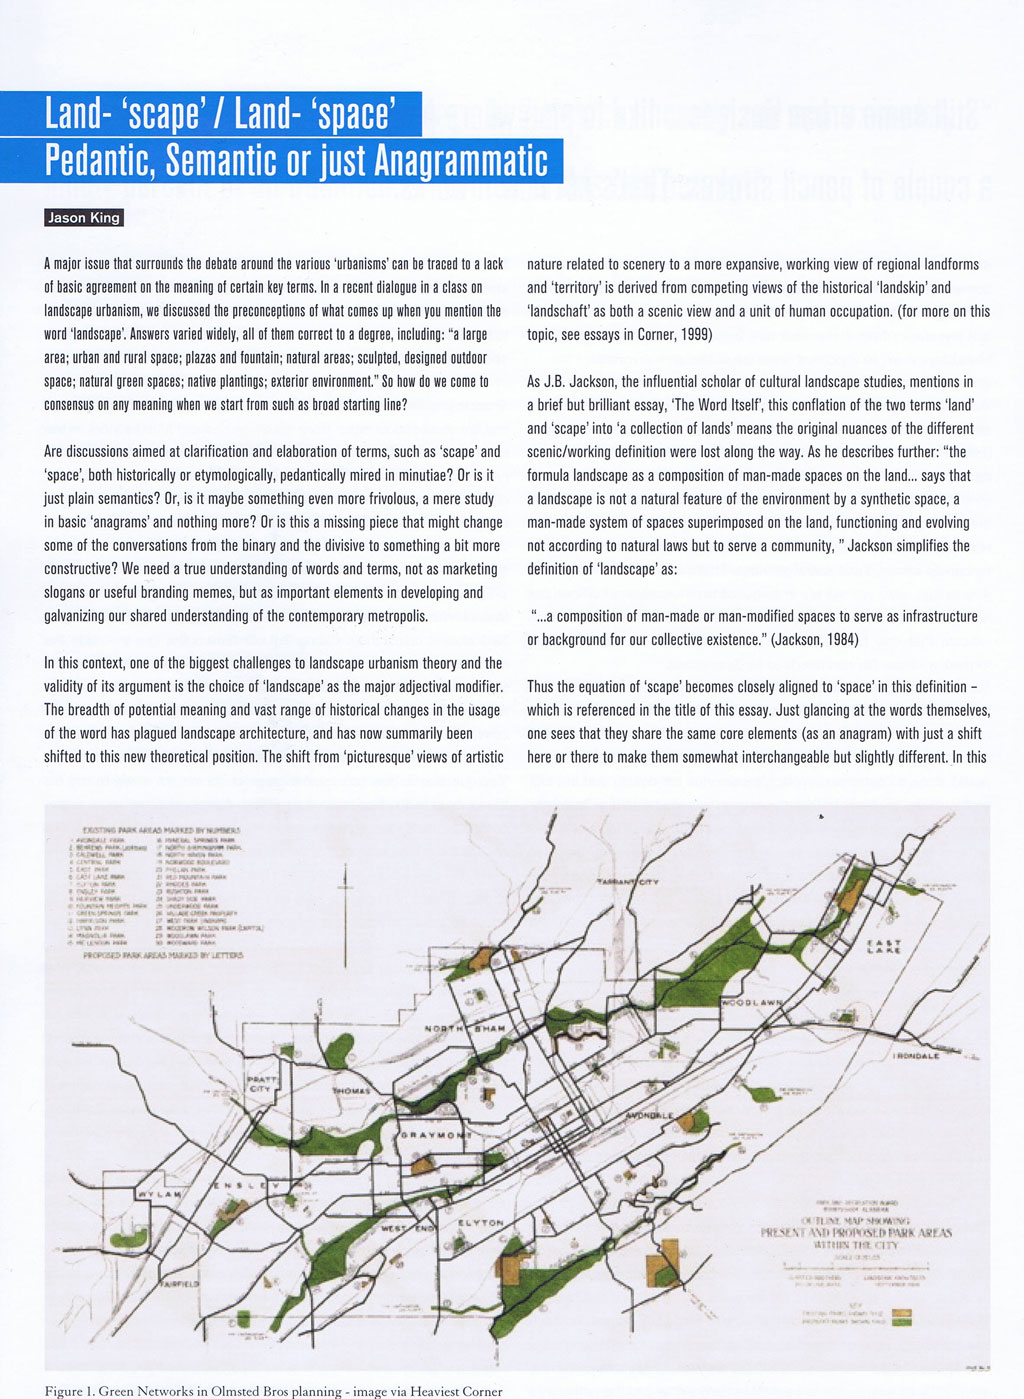 landscape urbanism essay in atlantis magazine using definitions from jb jackson s essay the word itself the parallels between space and scape are delineated as jackson s cultural reading of